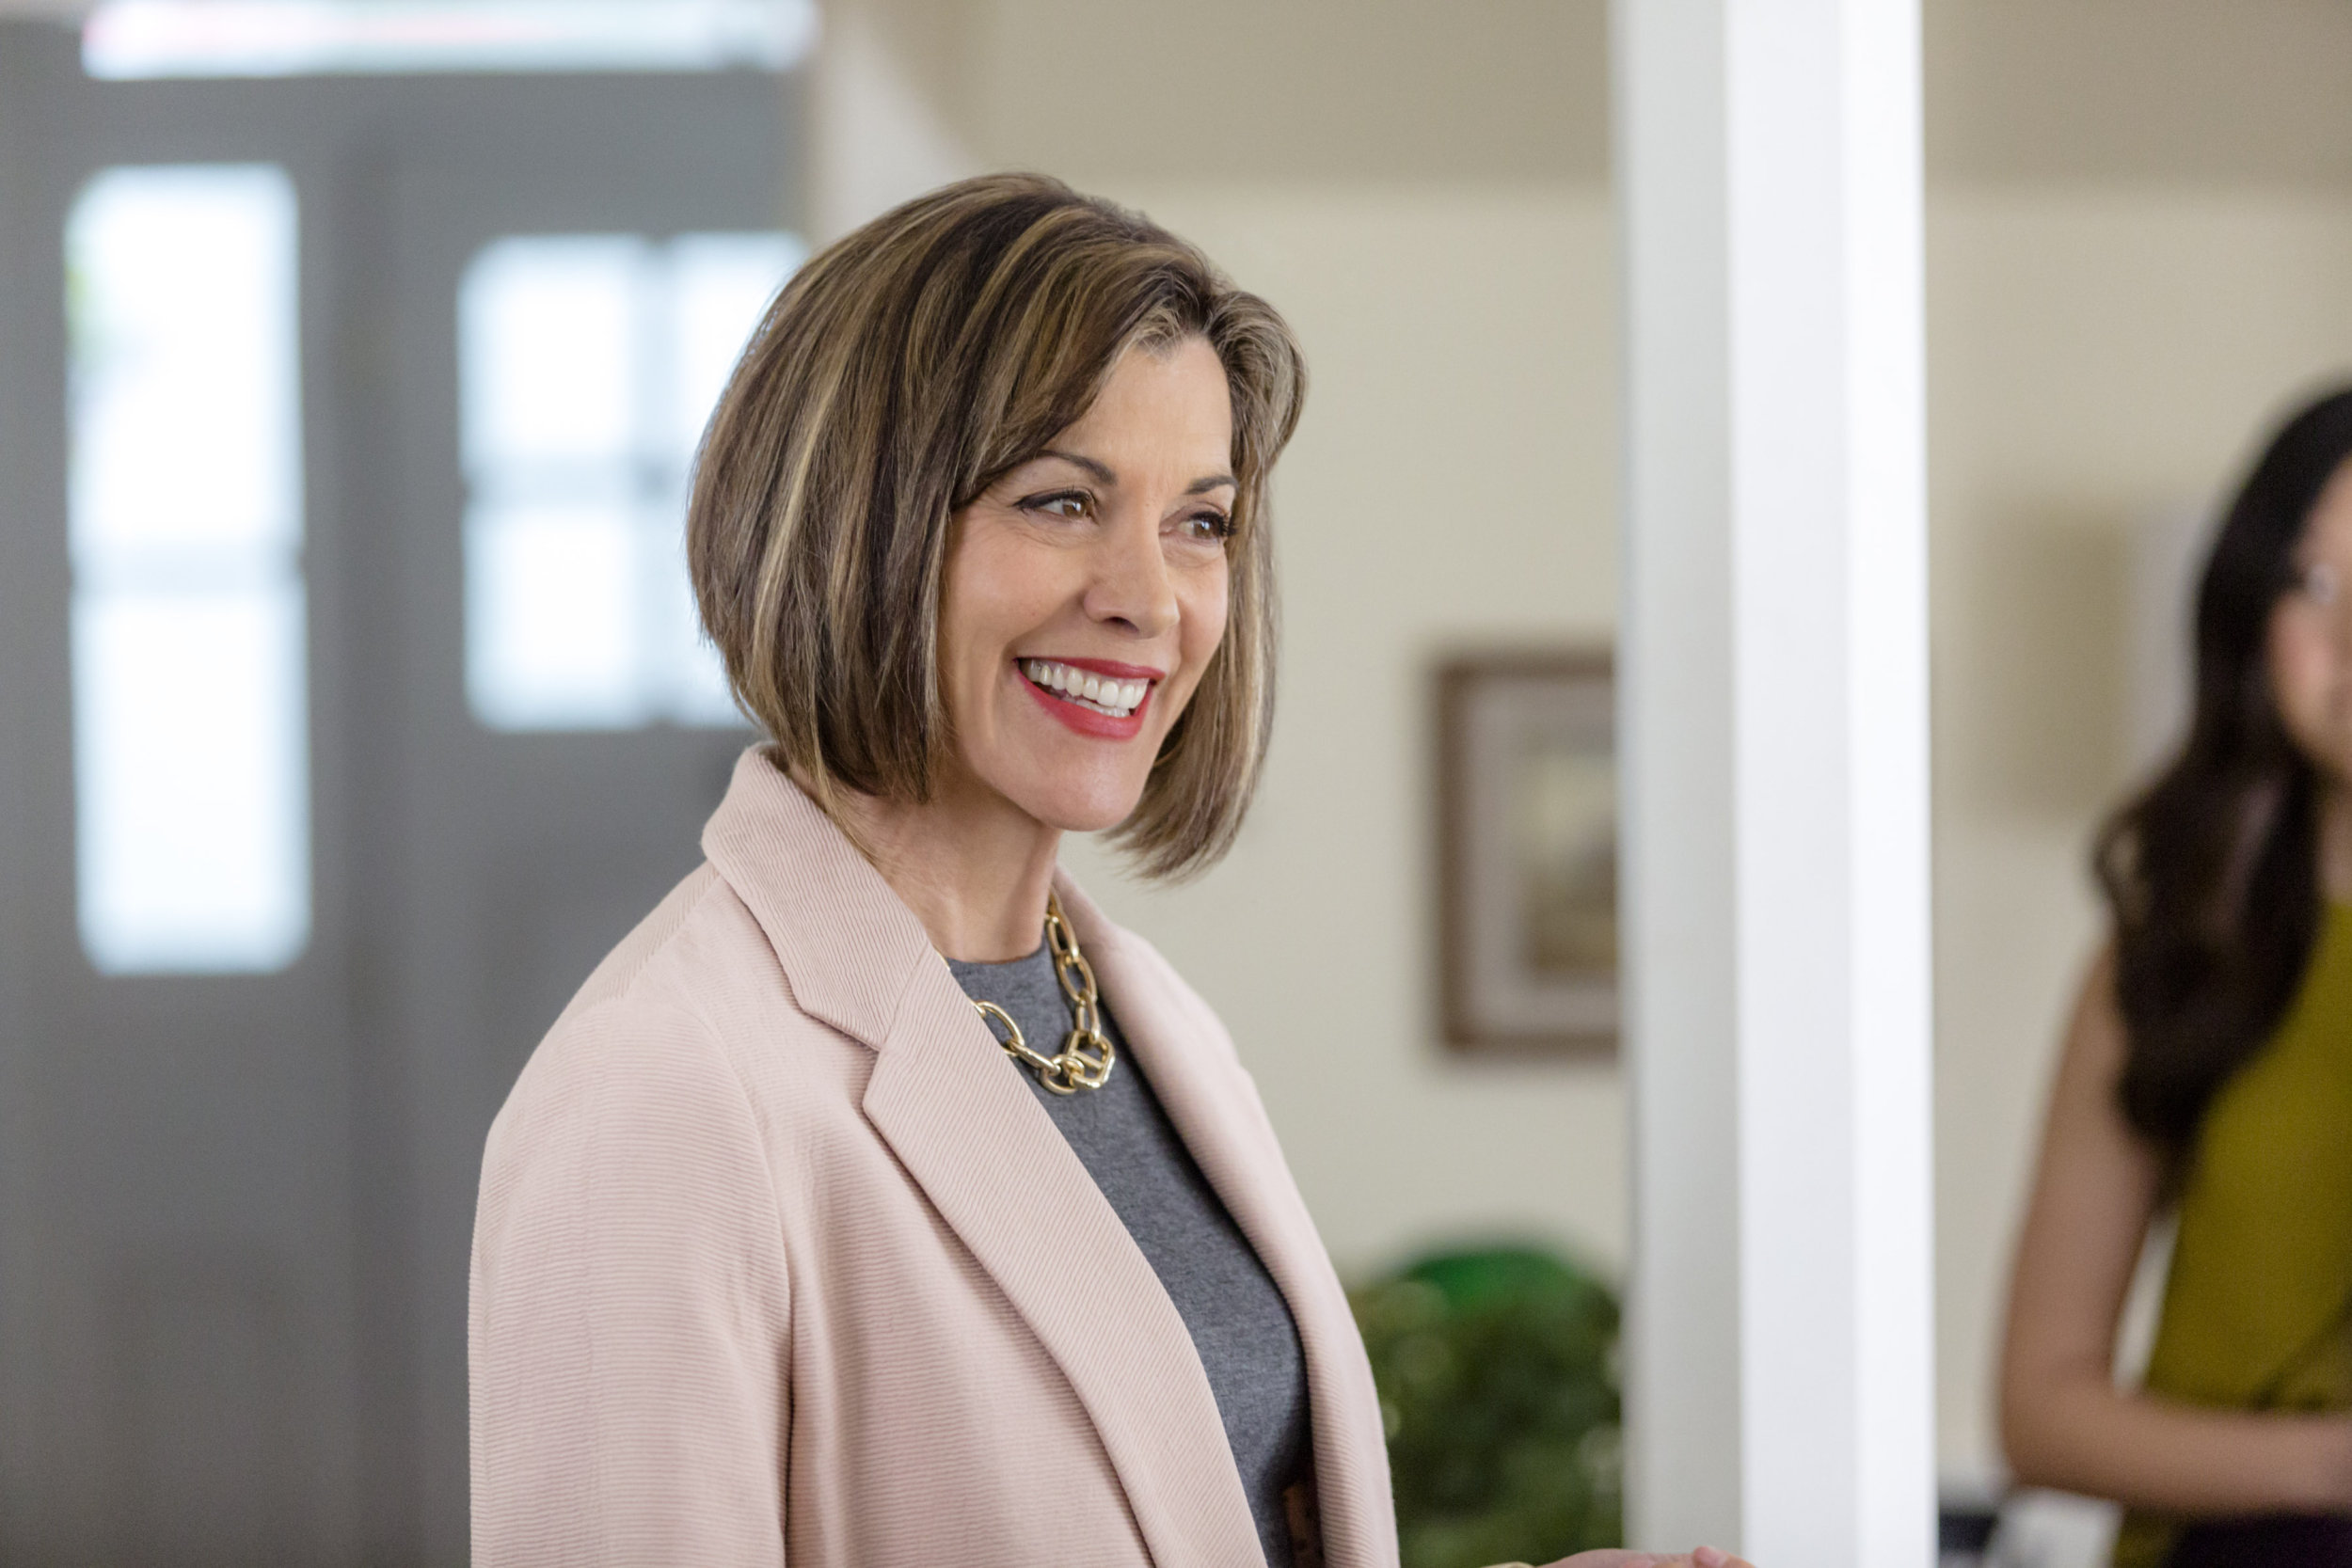 Wendie Malick calls third act 'the sweetest time in my career' - FF2 Media